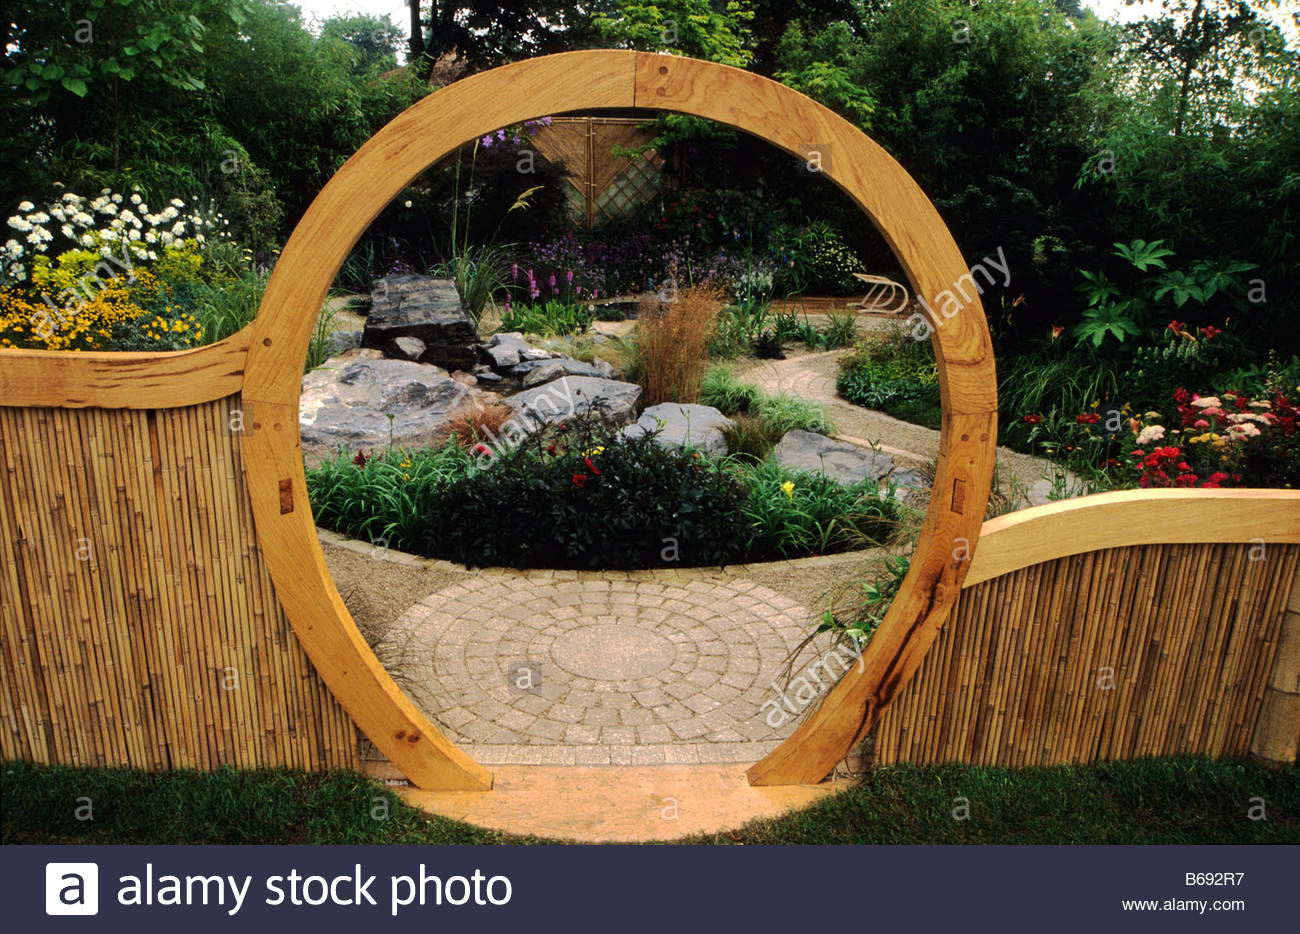 Hampton Court FS 1999 Feng Shui Garden Design Pamela Woods Wooden Moon Gate  By James Showers Bamboo Fence